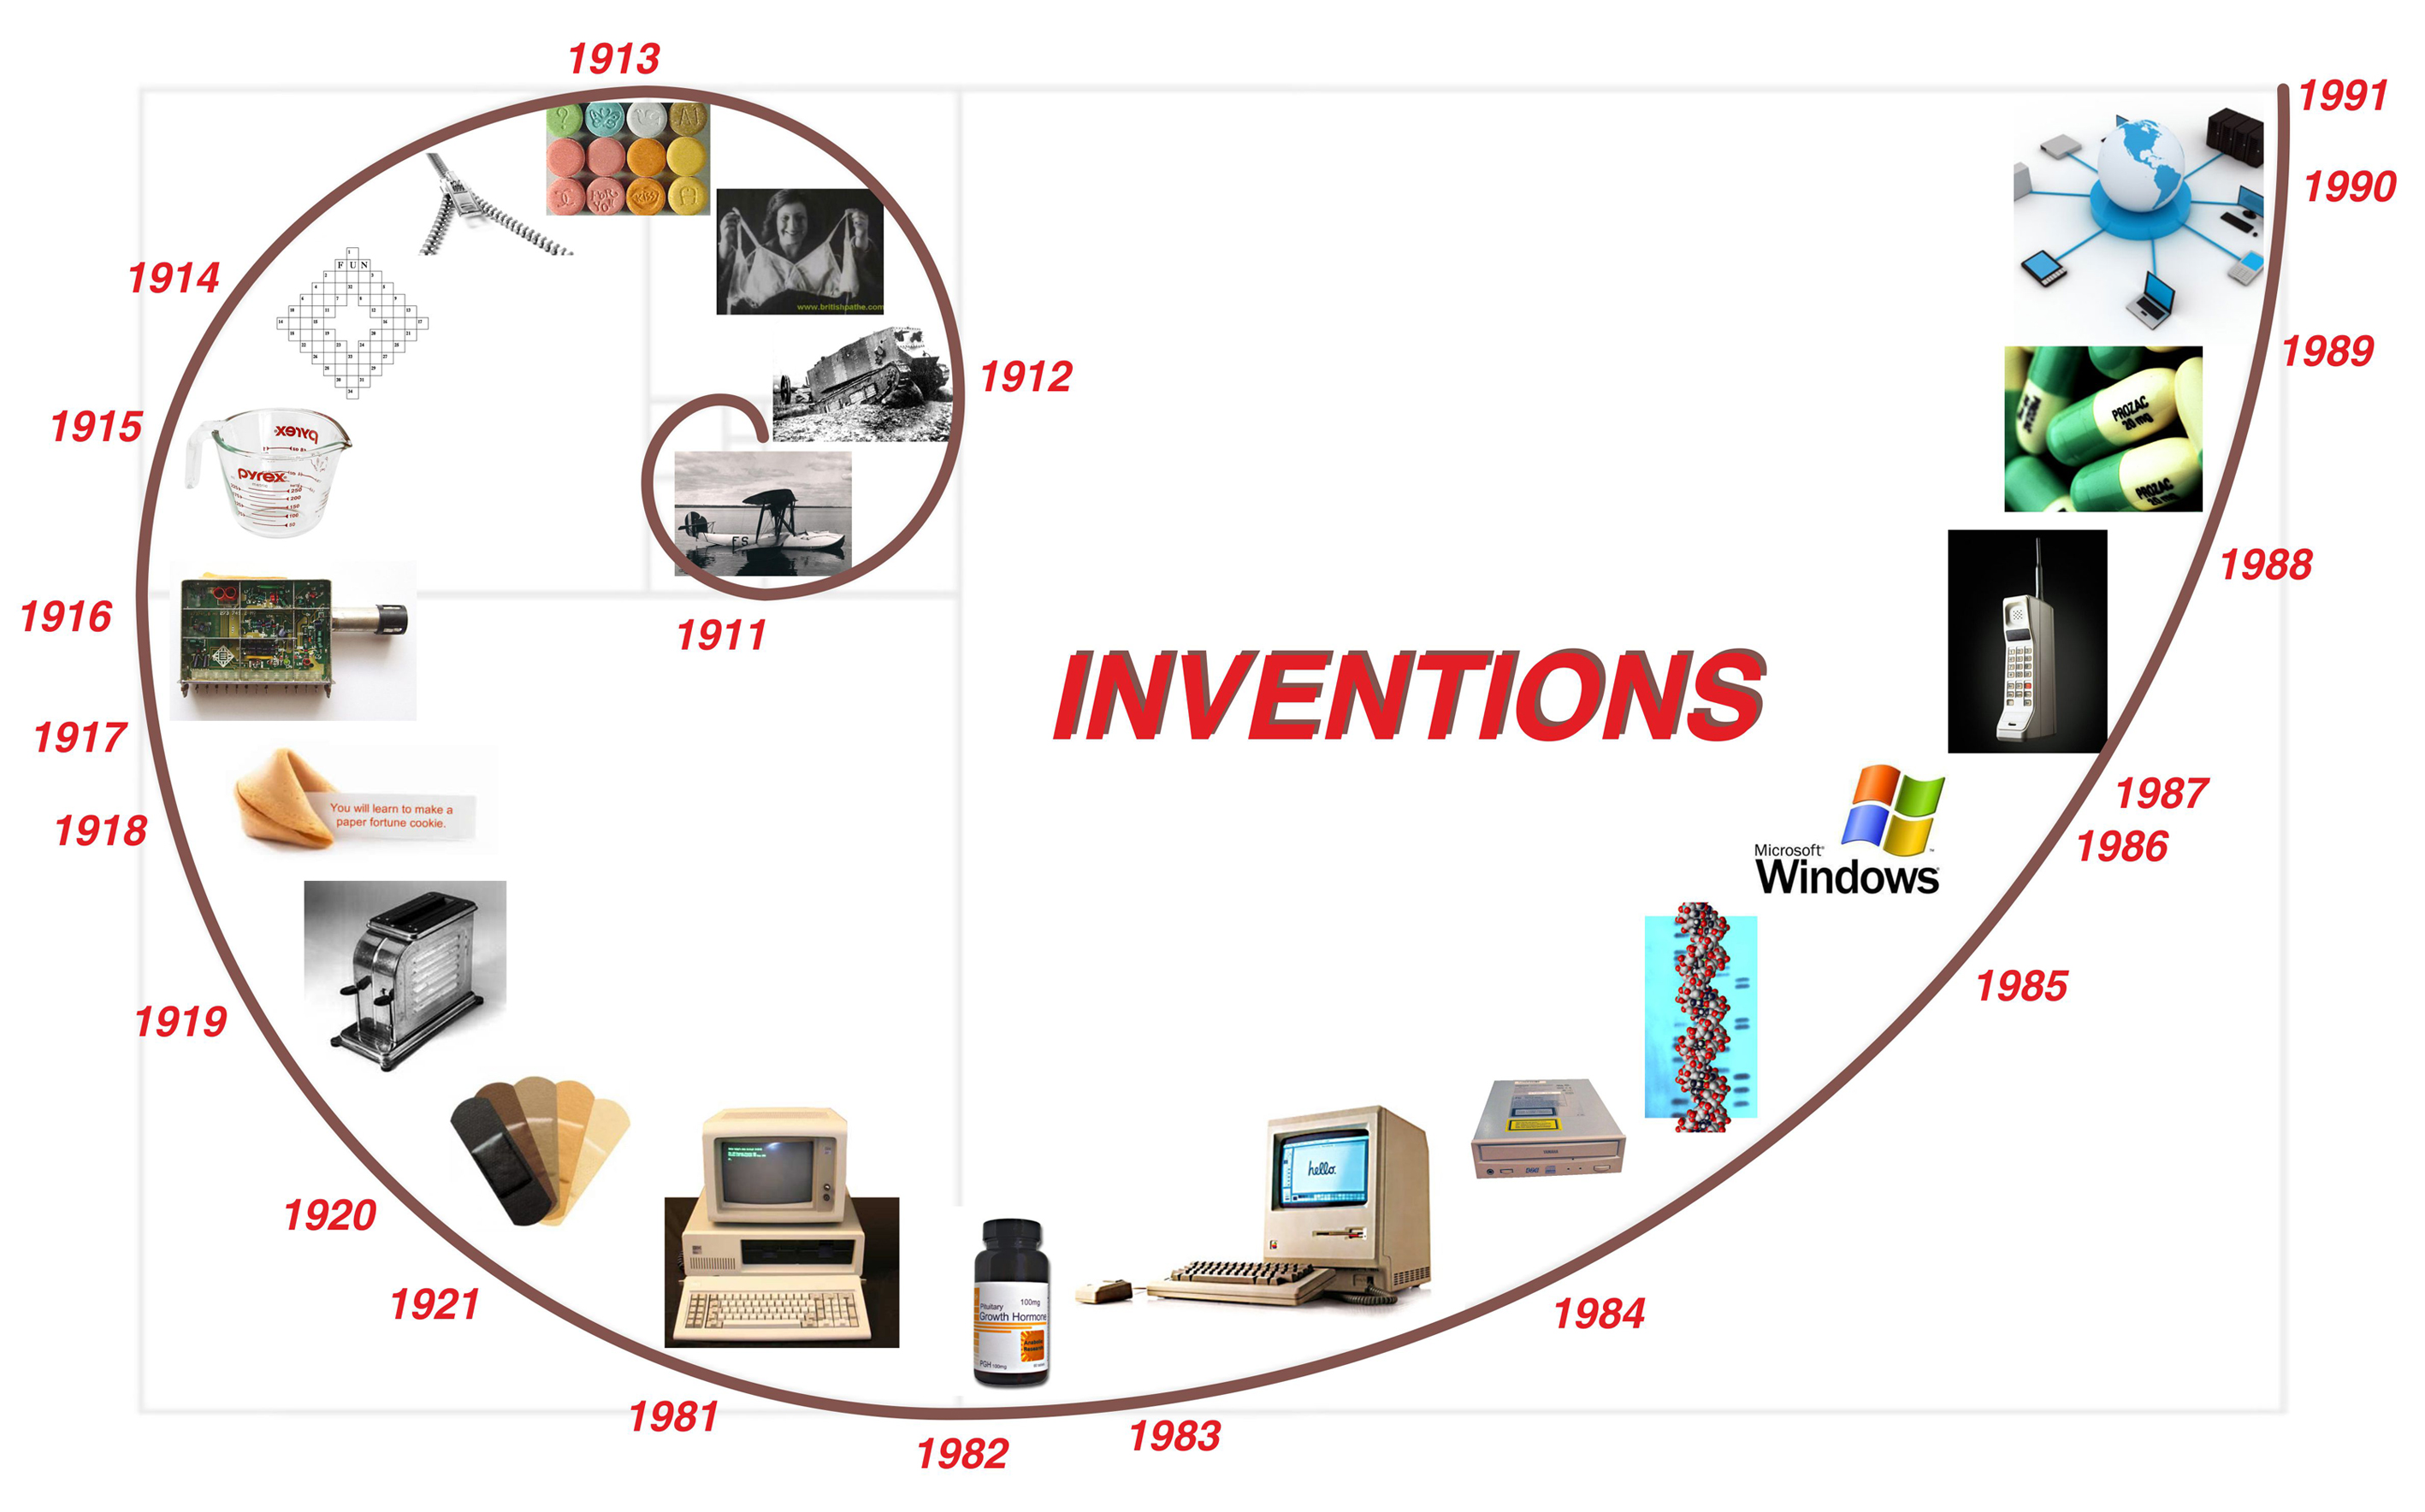 the inventions between past and present inventions